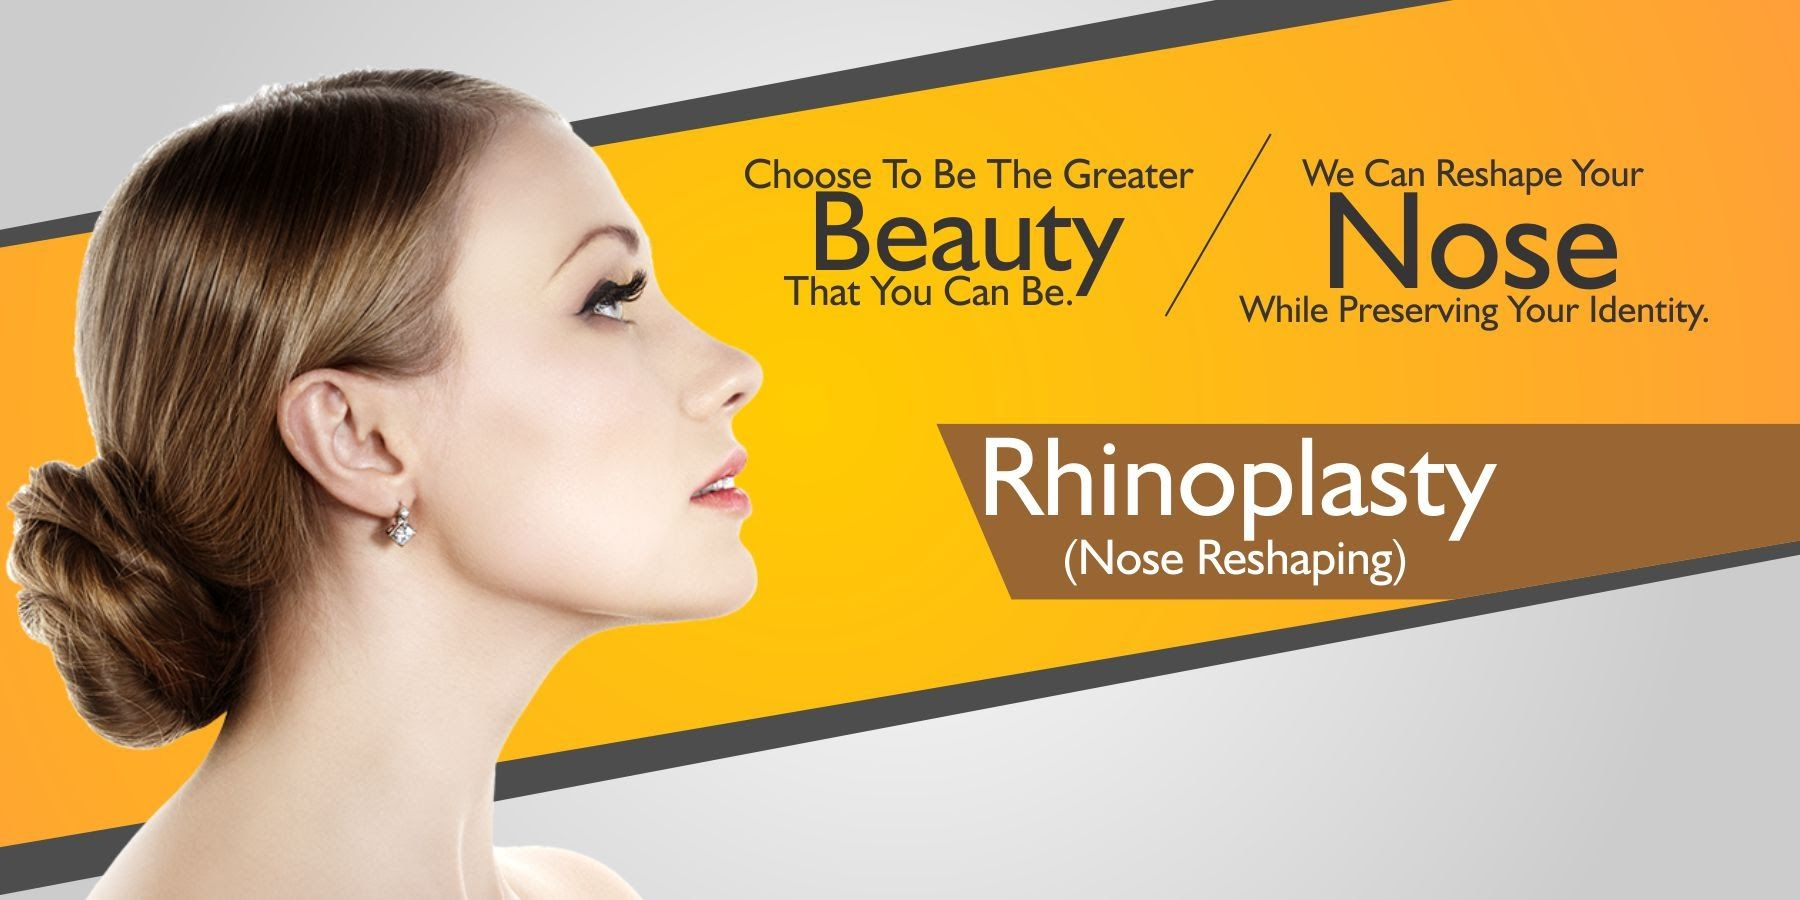 Rhinoplasty Surgery Cost In Delhi Nose Reshaping In Delhi India Nose Reshaping Rhinoplasty Rhinoplasty Surgery